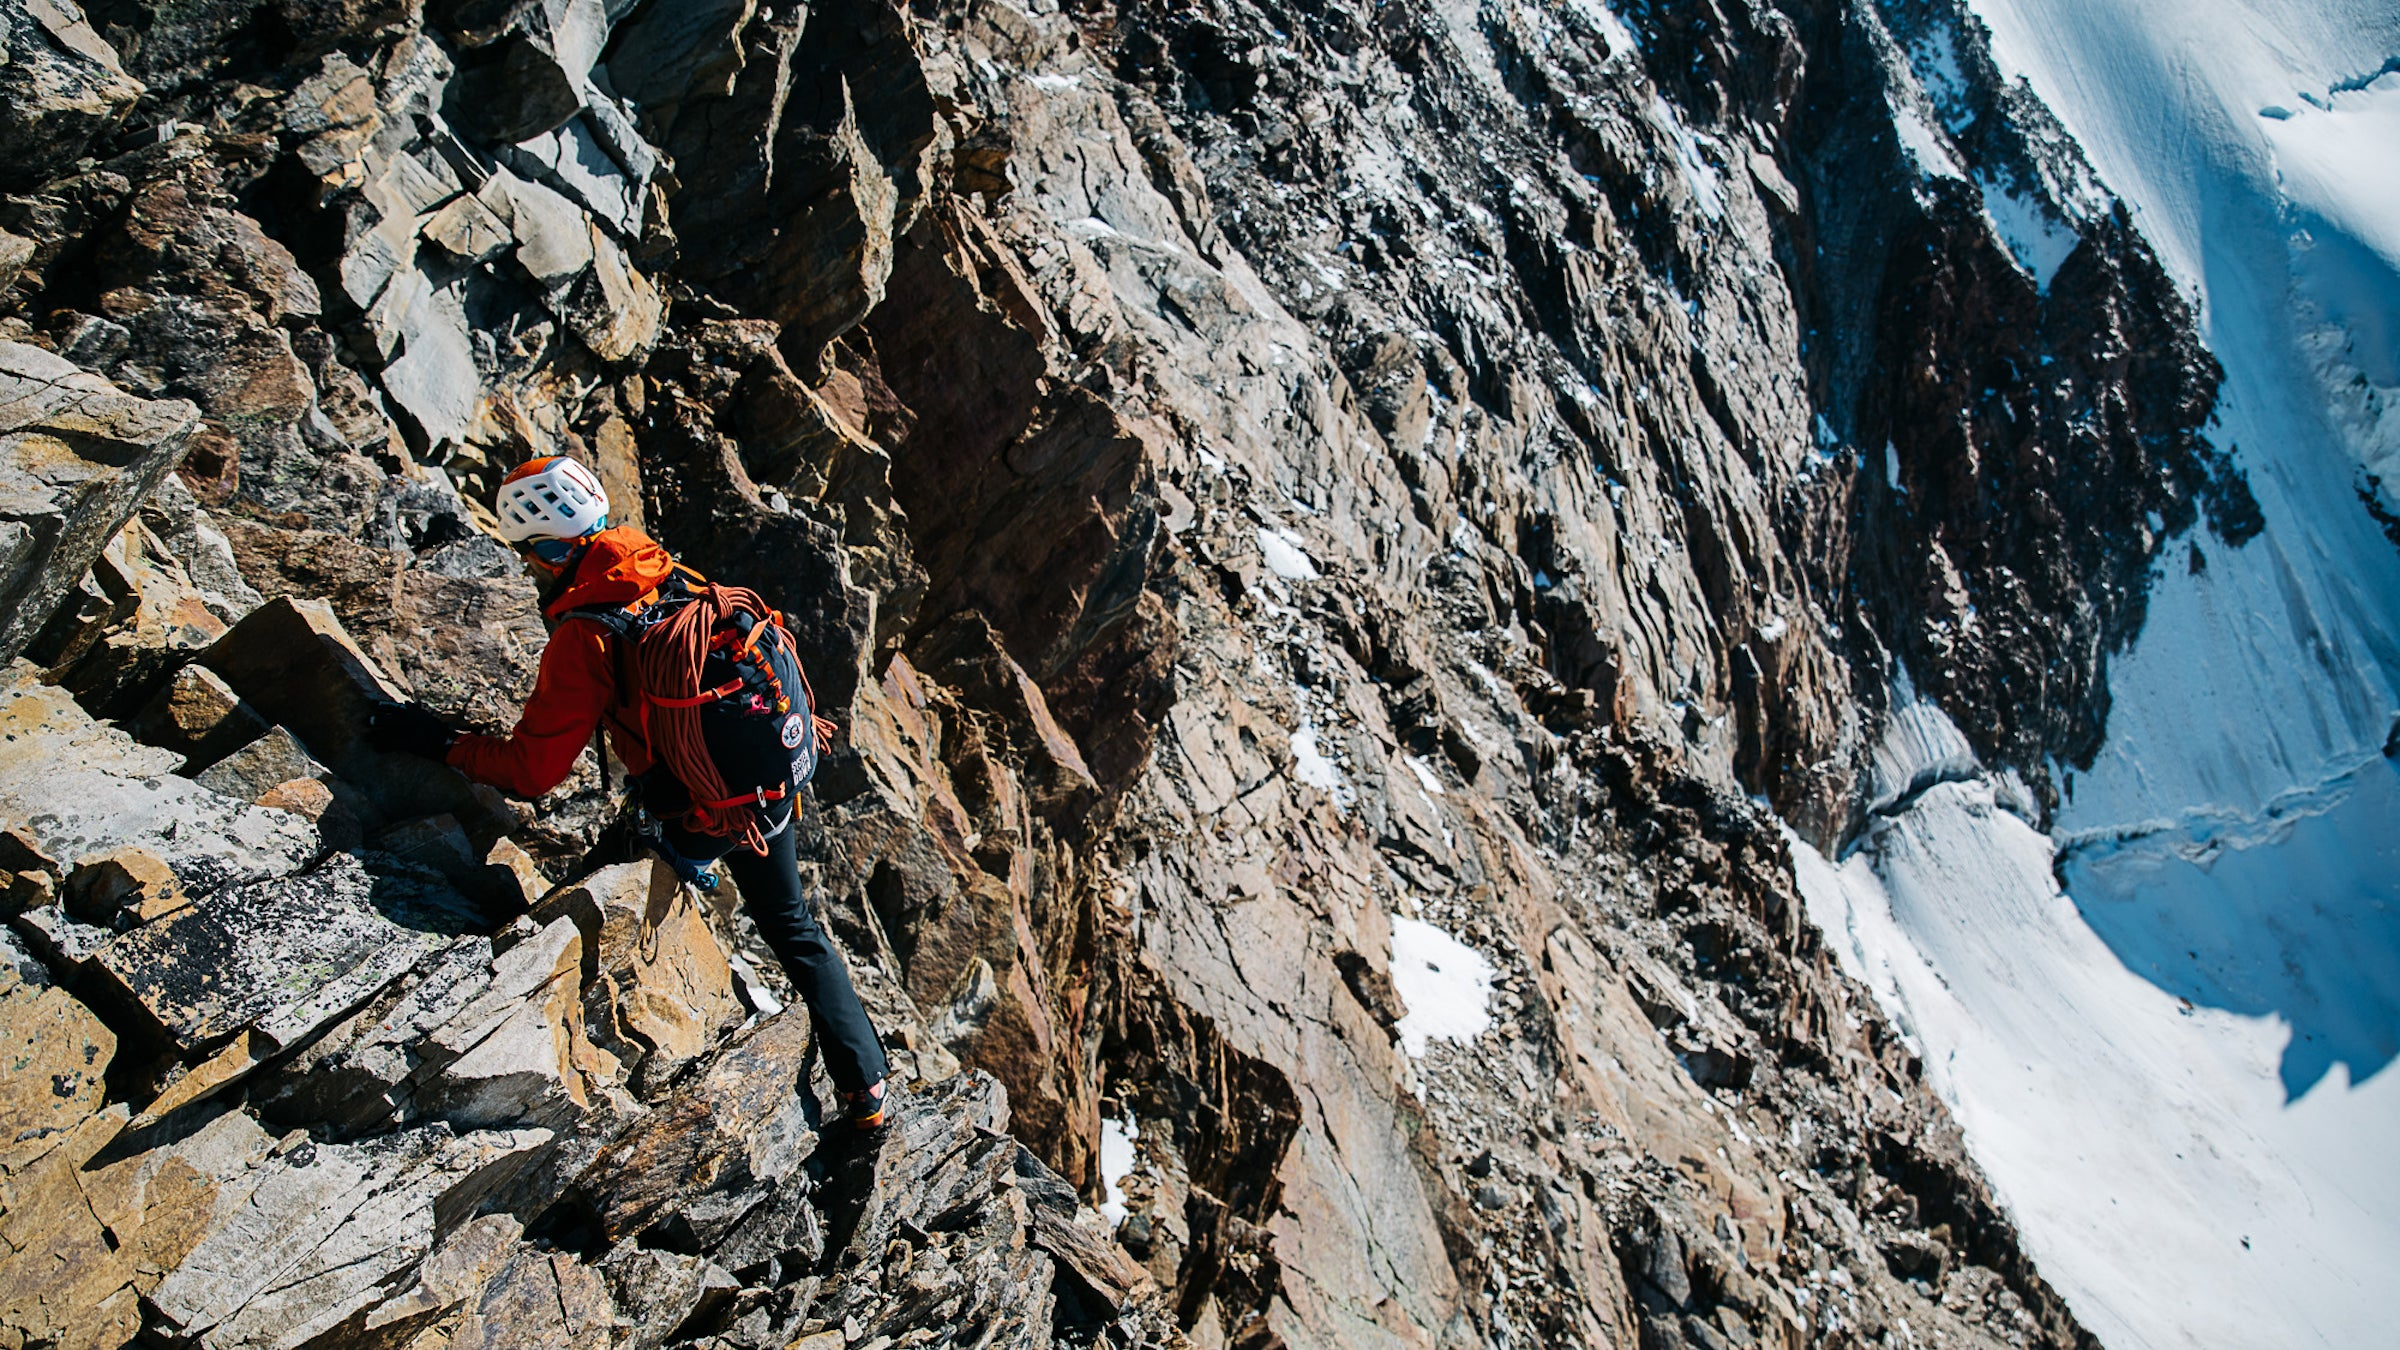 The Mont Blanc mountain range is becoming more dangerous to climb as permafrost melts and rocky areas start to crumble.